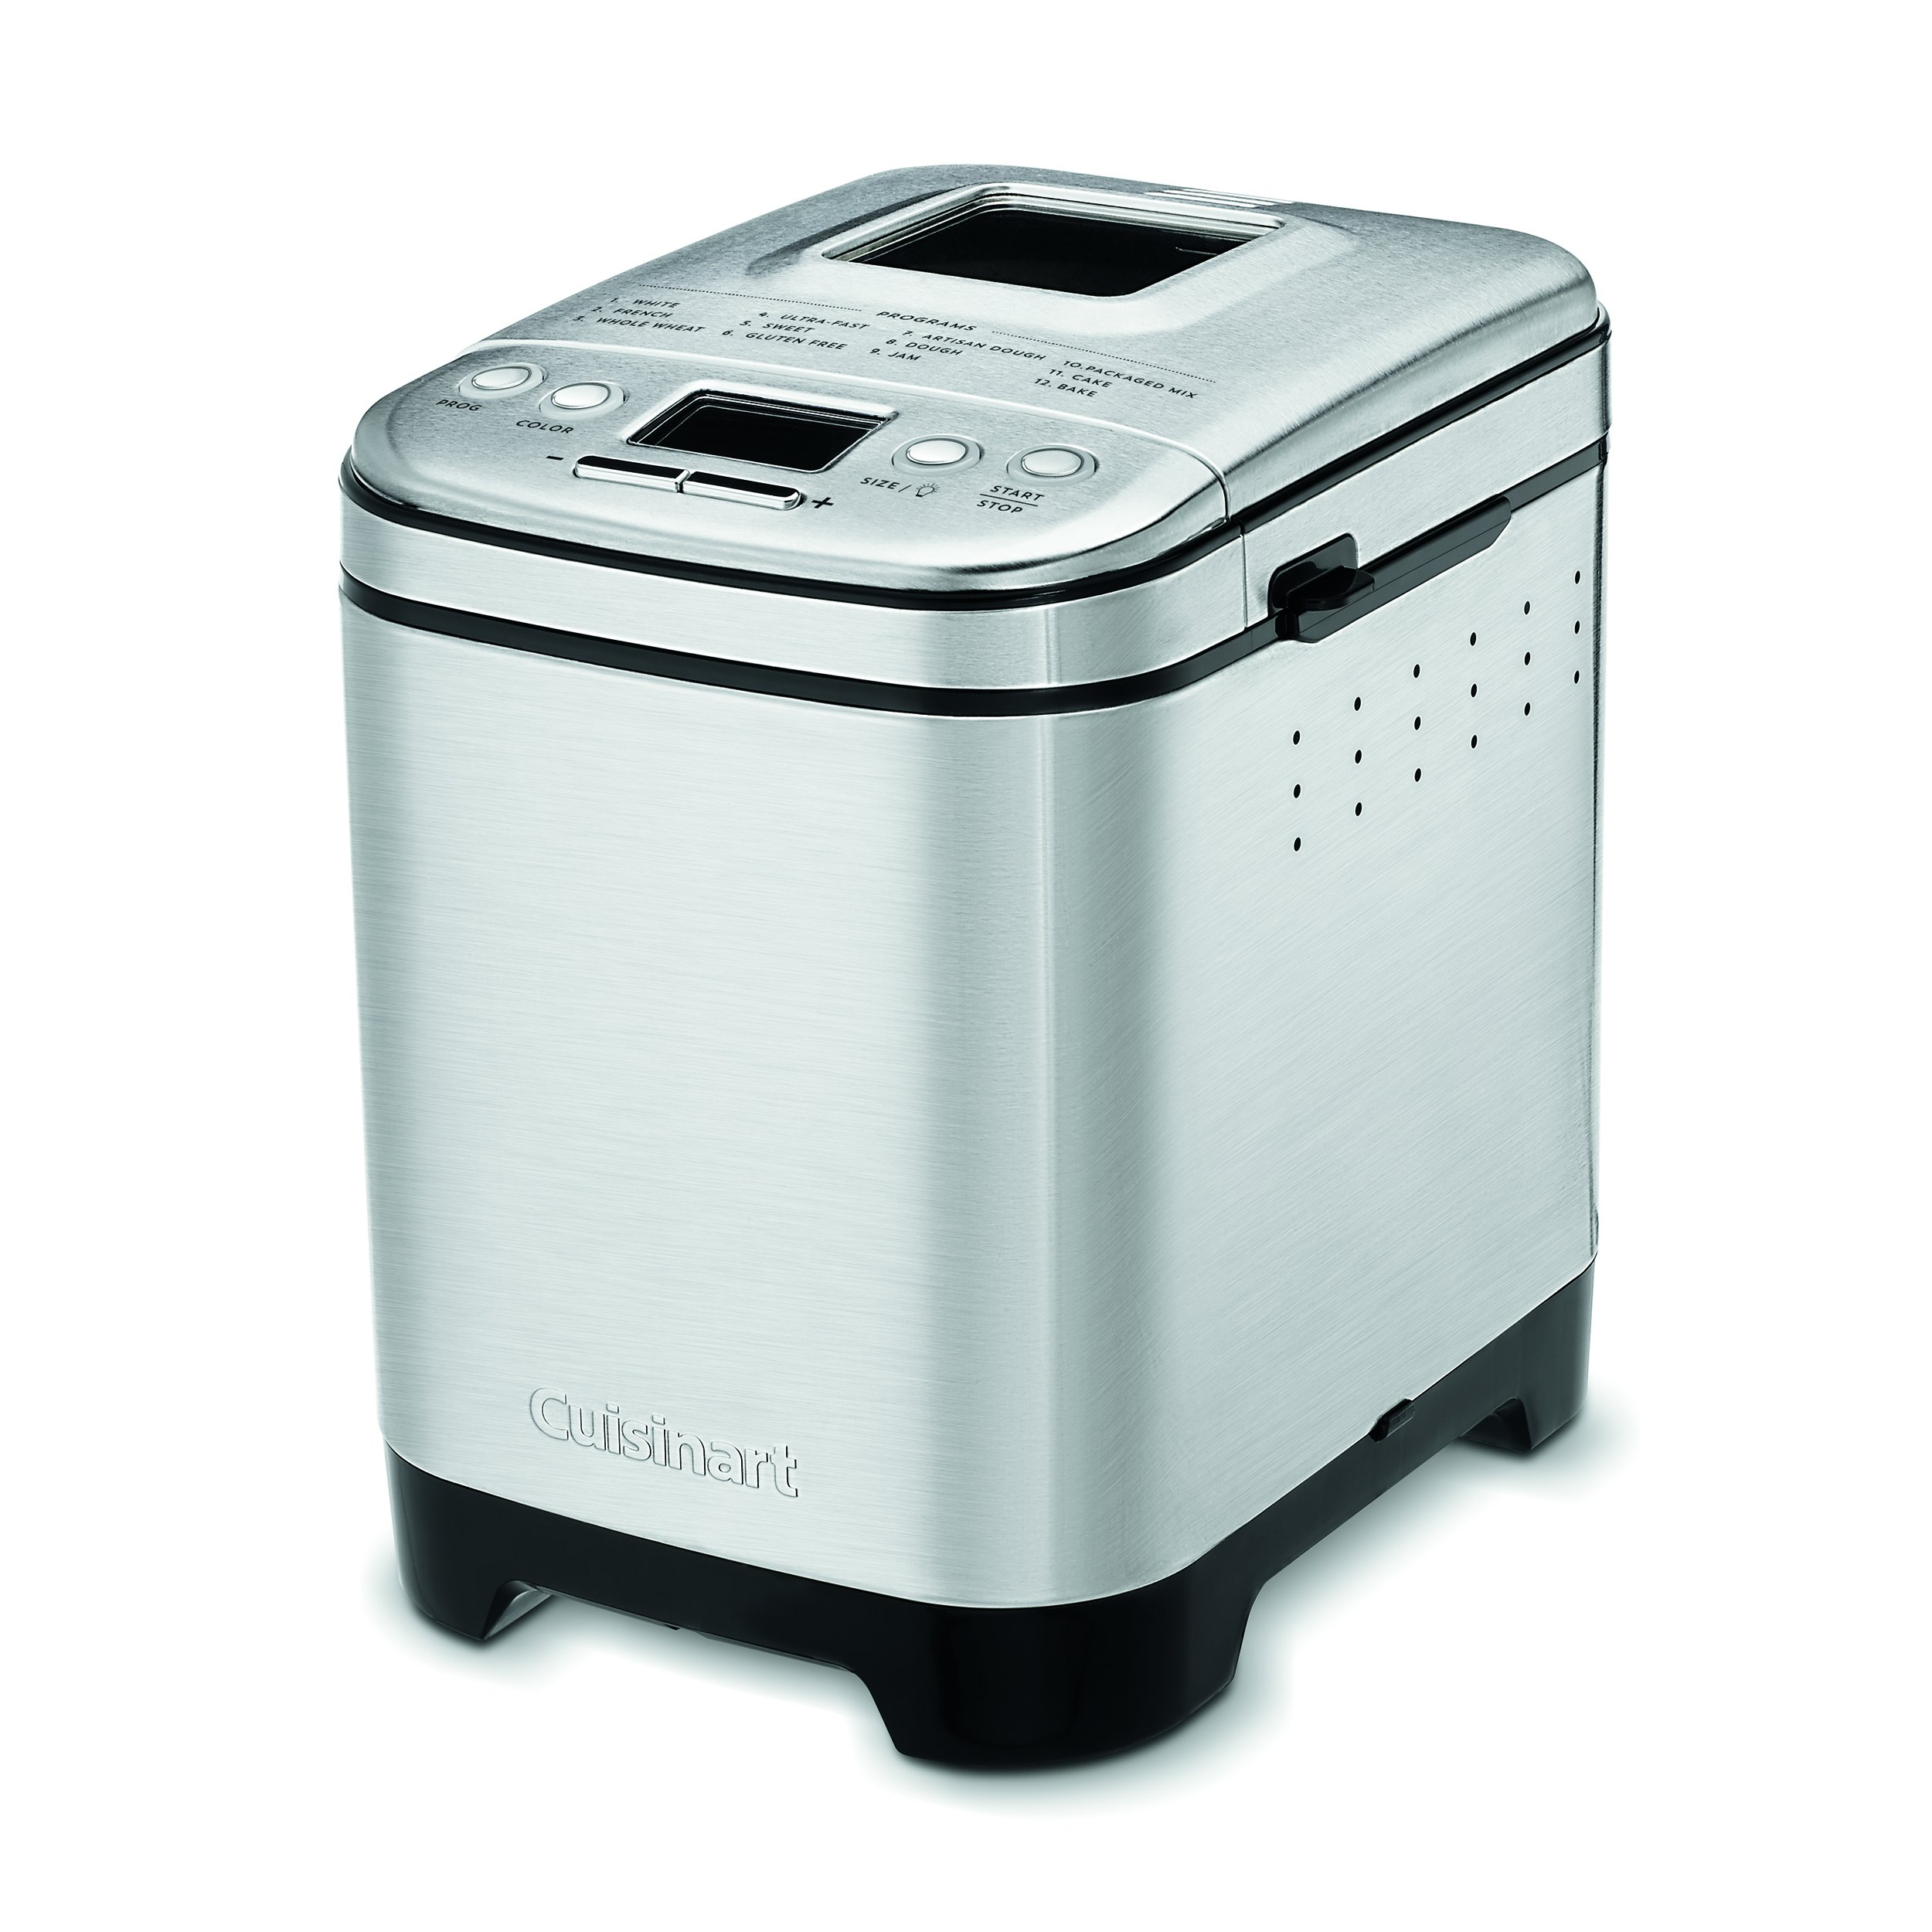 Cuisinart CBK-110 Compact Automatic Bread Maker, New by Cuisinart